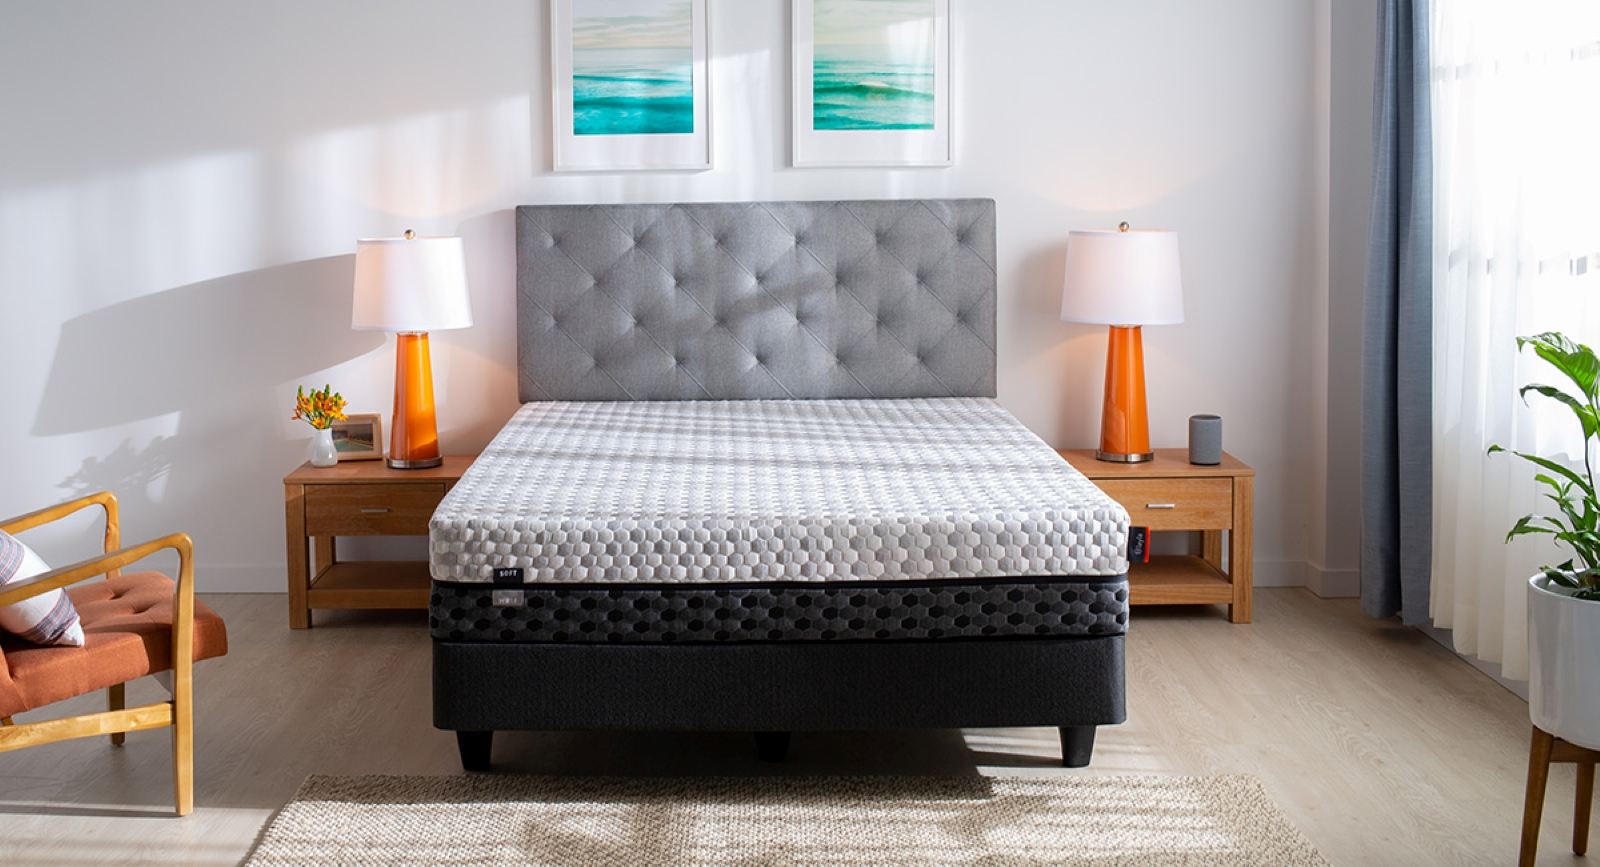 Layla Two tone gray mattress on a gray bedframe with wood night stands on both sides